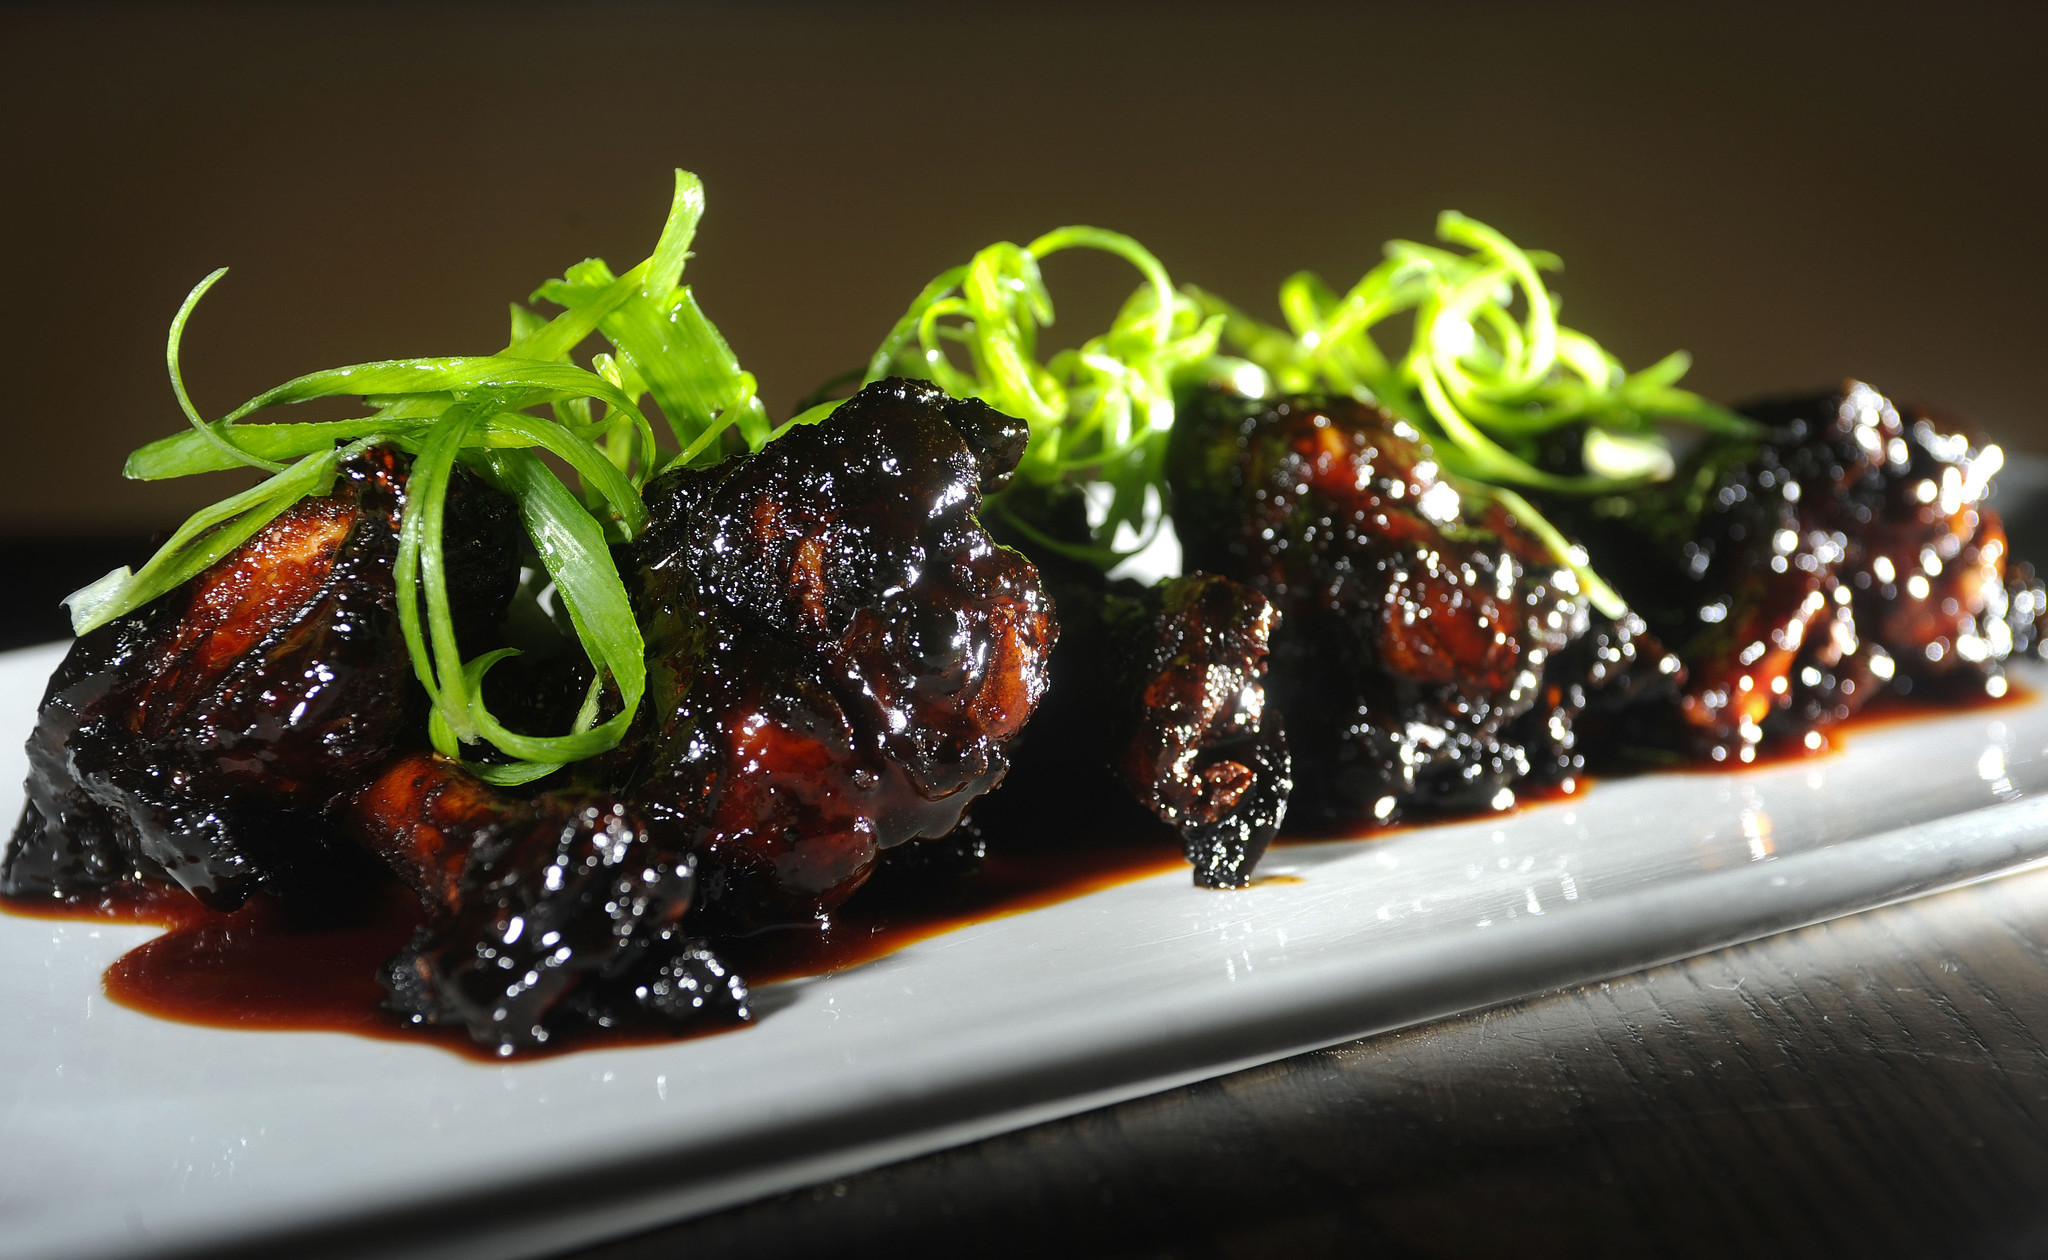 Mahogany-Glazed Chicken Wings at Max's Grille in Boca Raton.